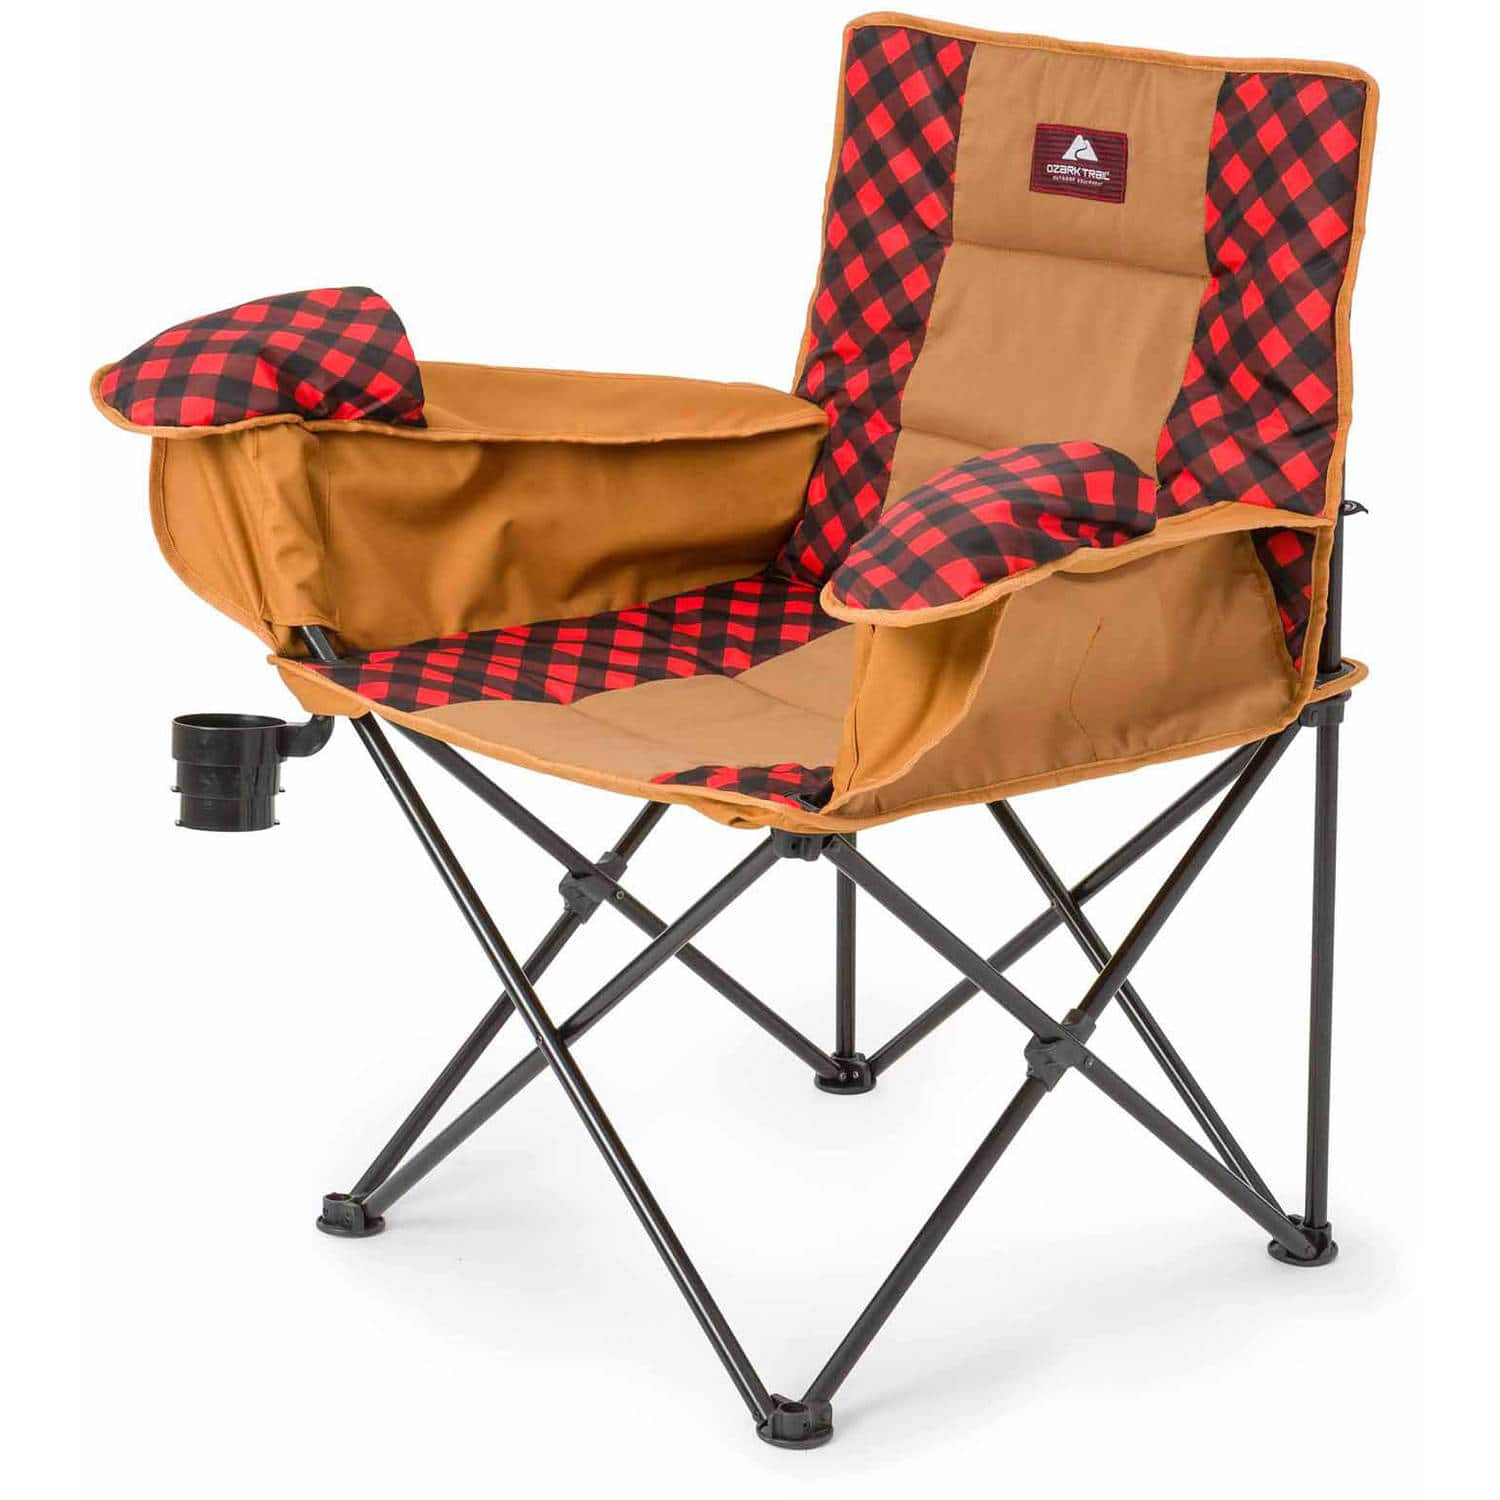 Ozark Trail Cold Weather Chair with Steel Frame, Blue/Red/Warm Gray - $9.97